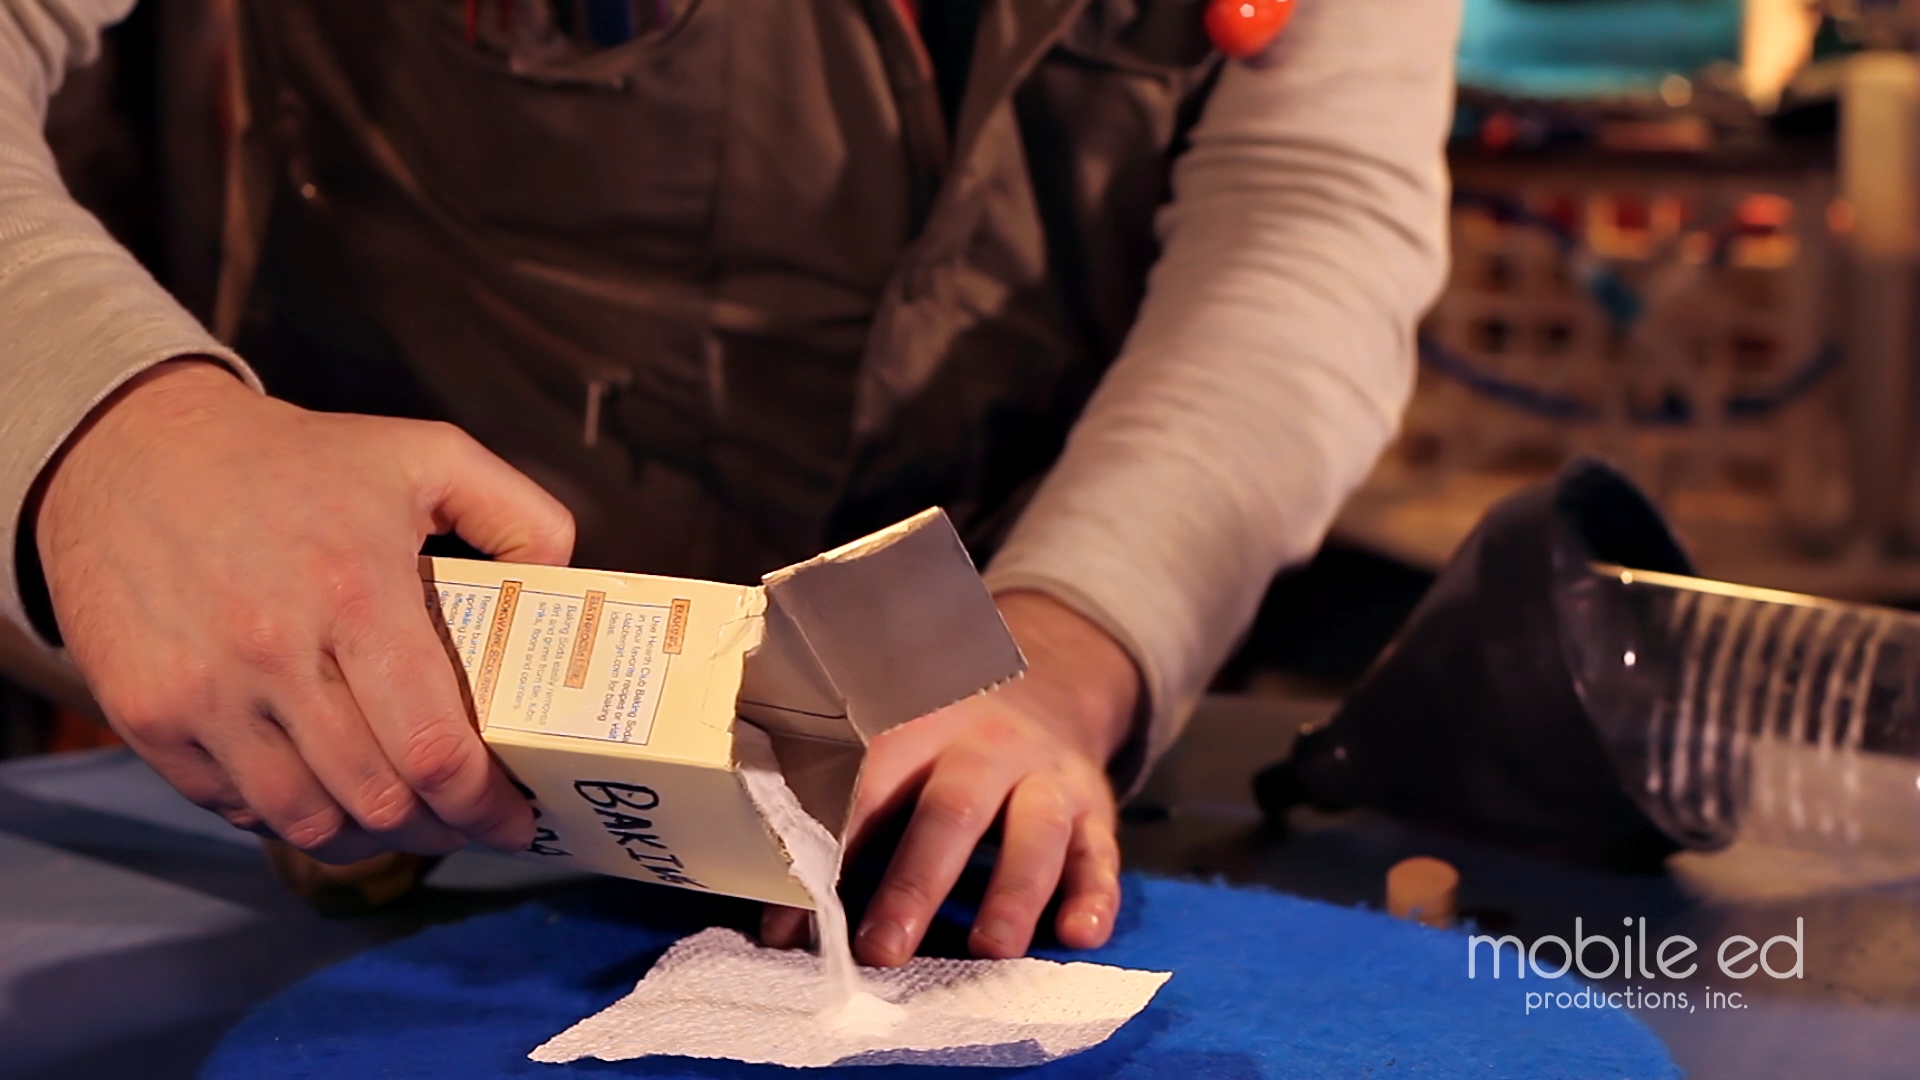 Build your own rocket - pour baking soda |  Handy Dan the Junkyard Man